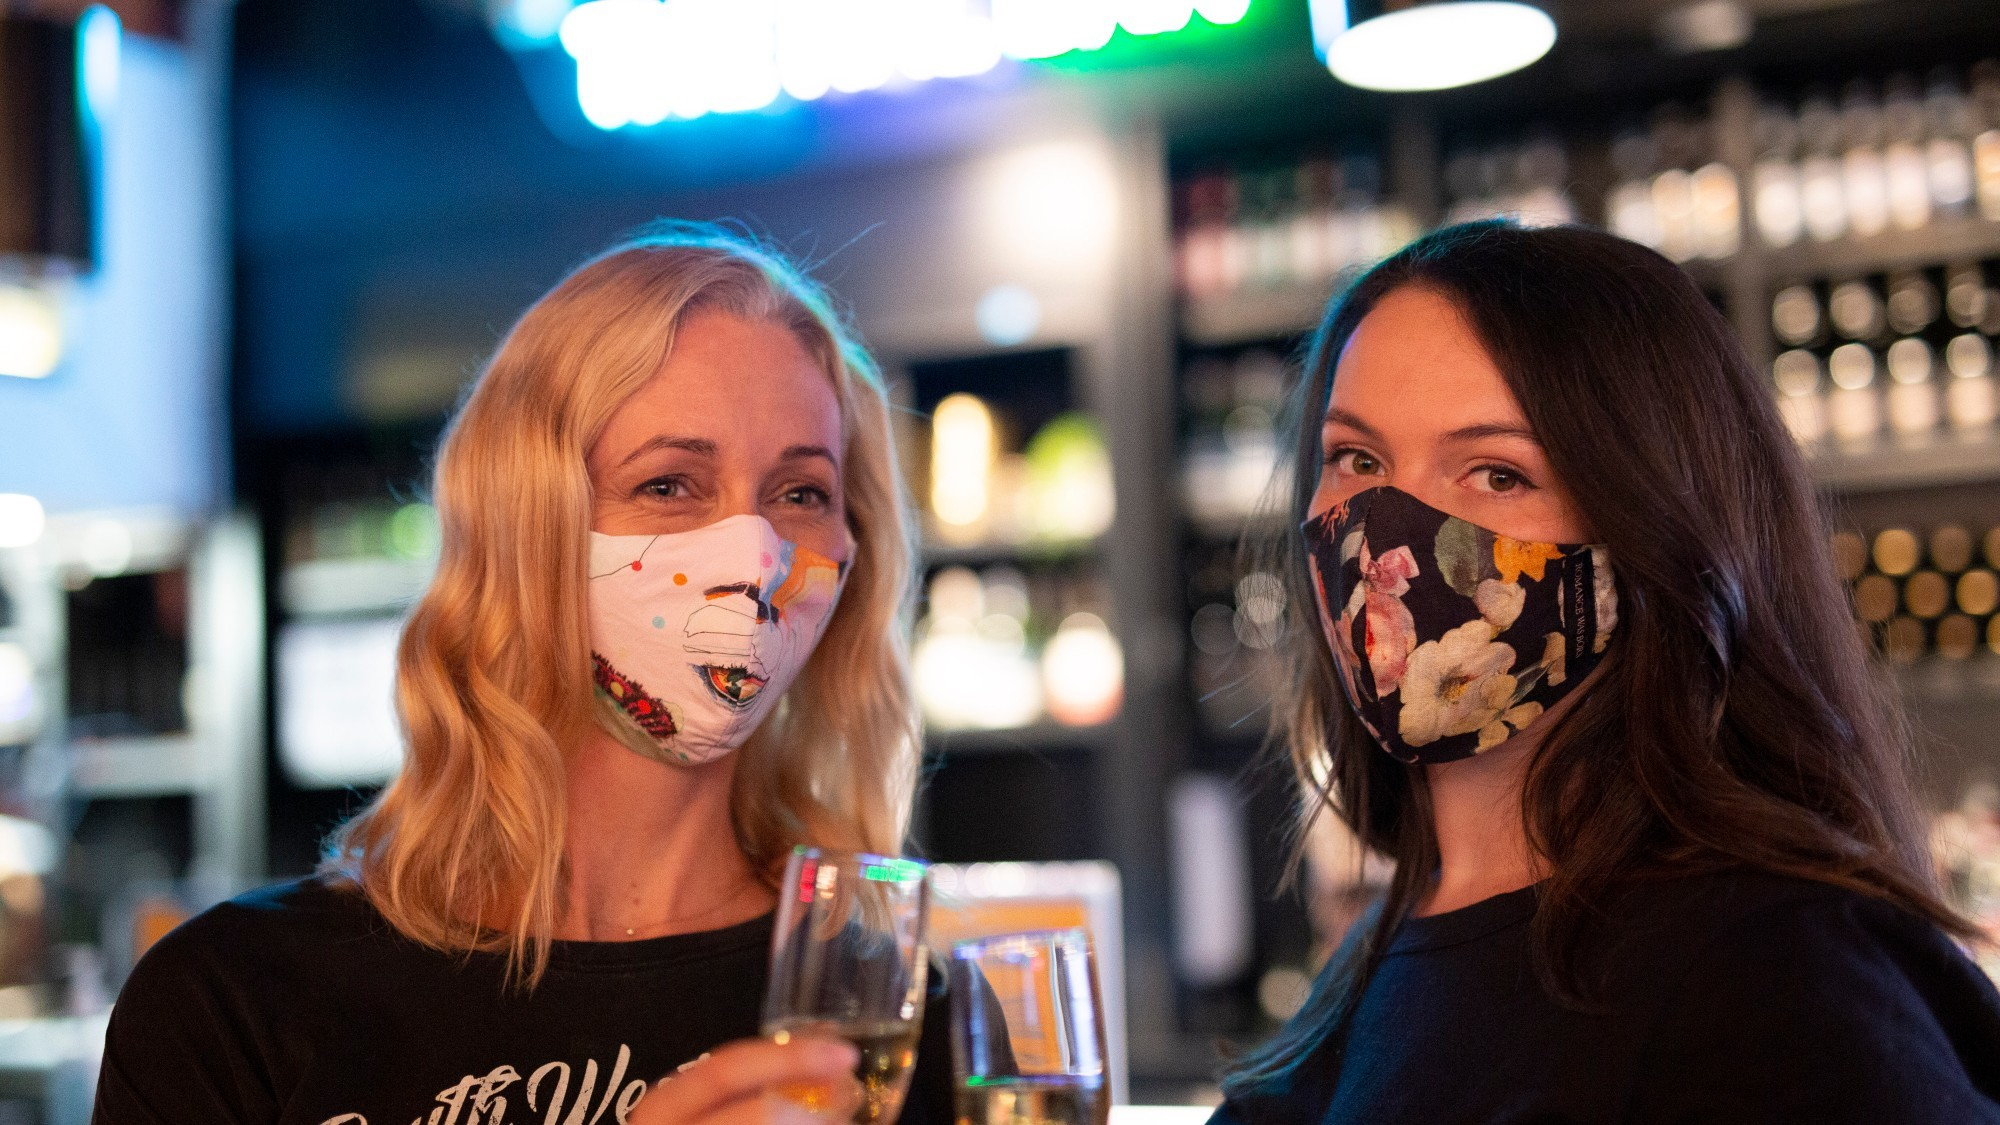 Where to buy face masks in Sydney right now